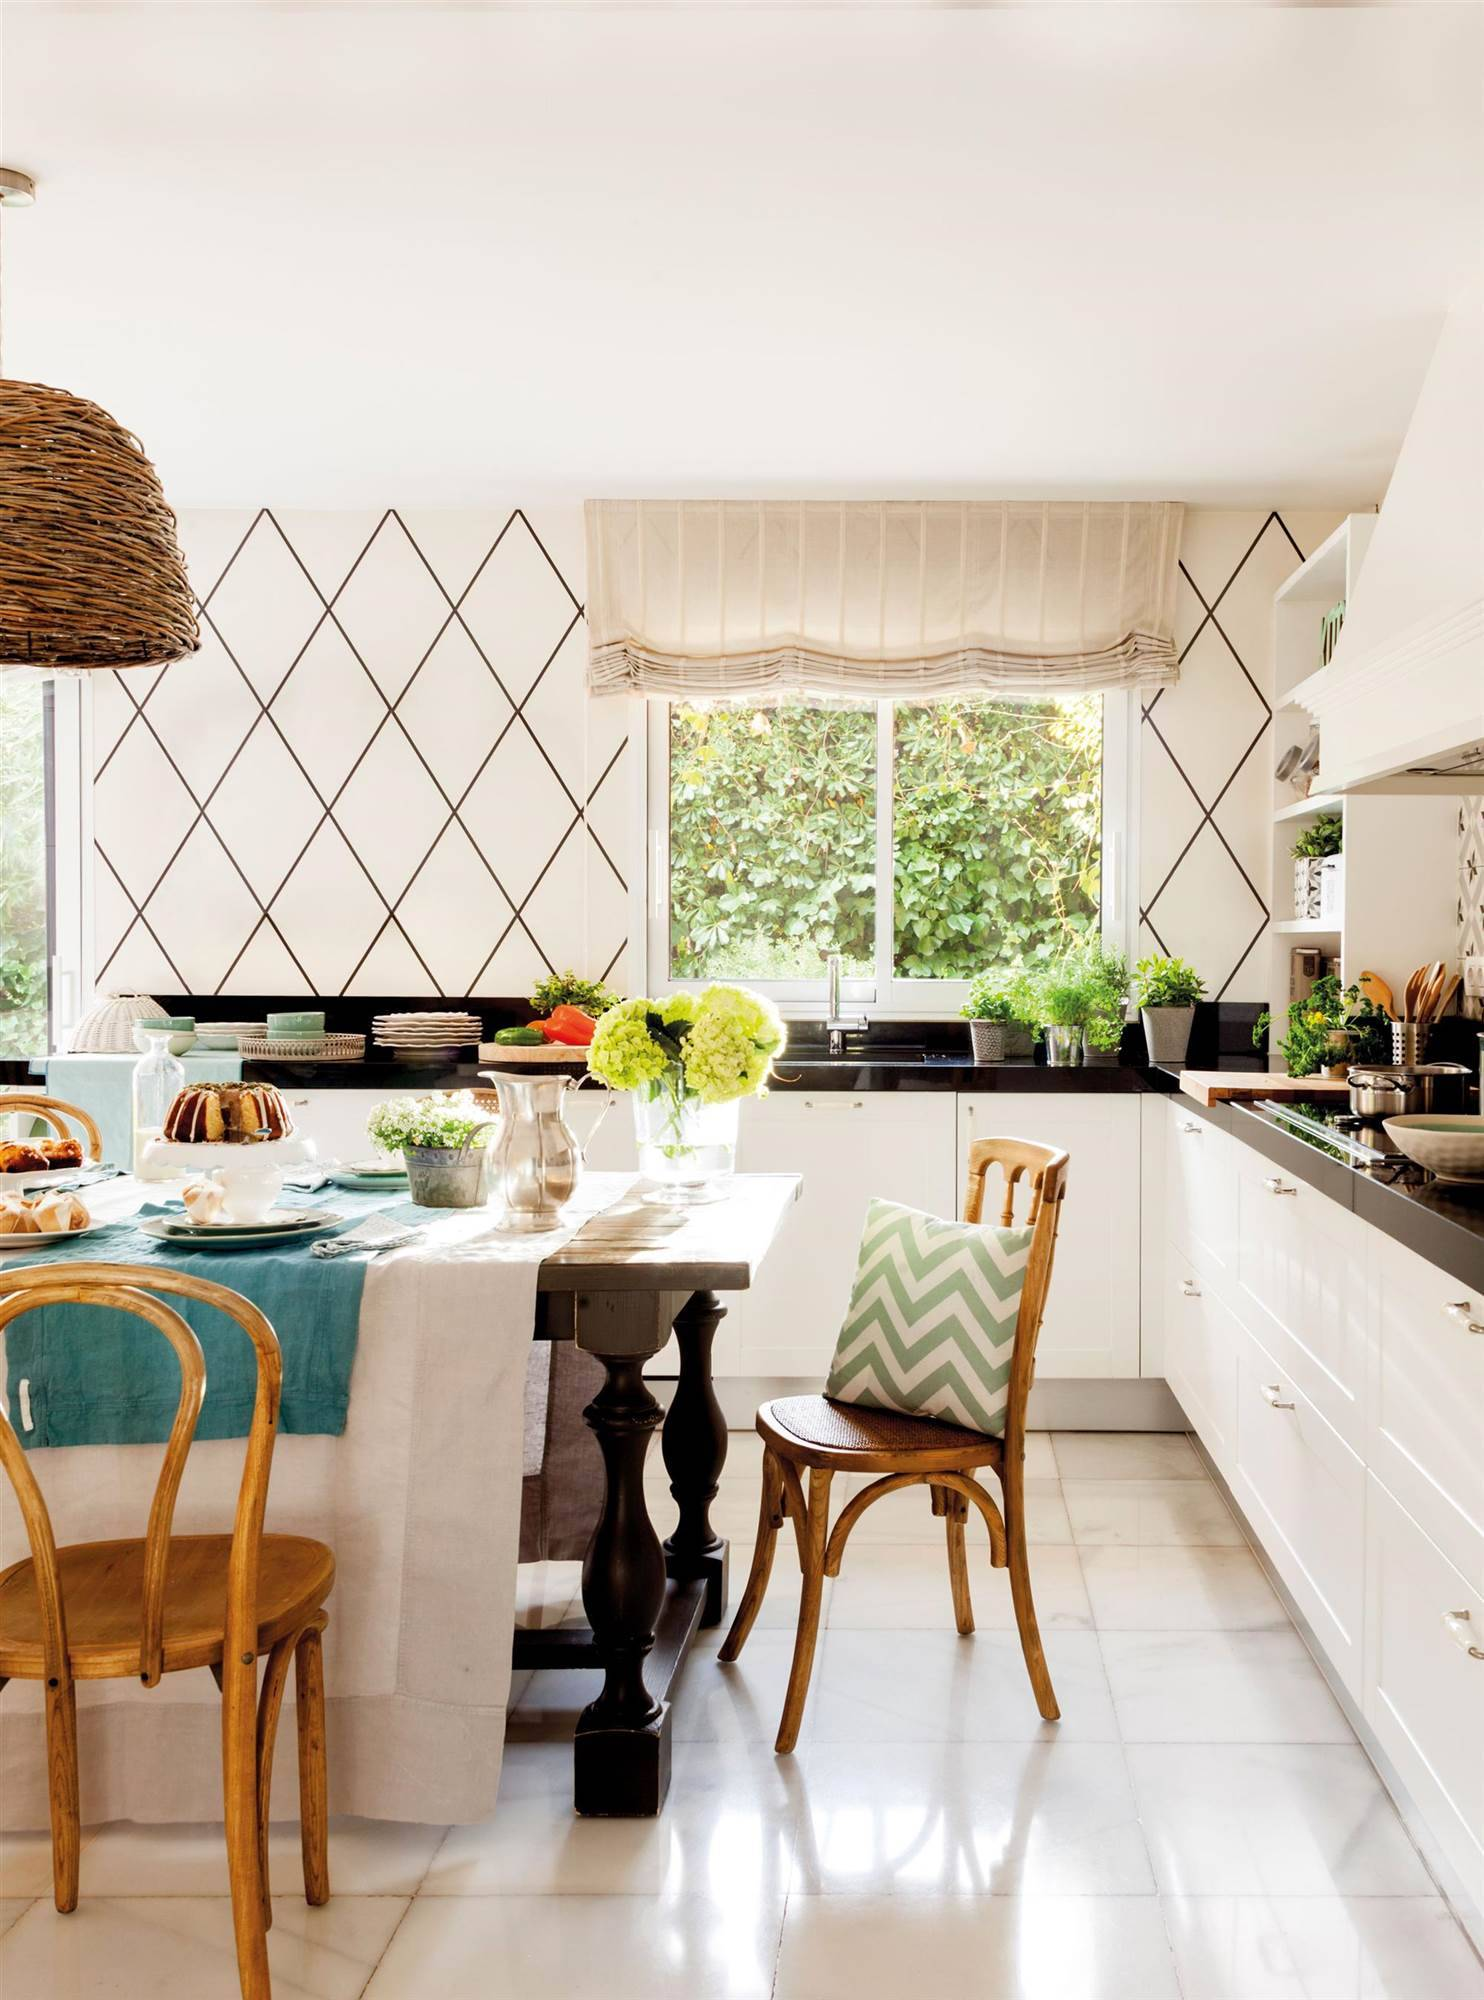 kitchen-with-office-in-white-and-black-with-wallpaper-and-table-and-wooden-chairs-00455058 d08c9c71 1484x2000.  34. Instead of tiles, do you have wallpaper?